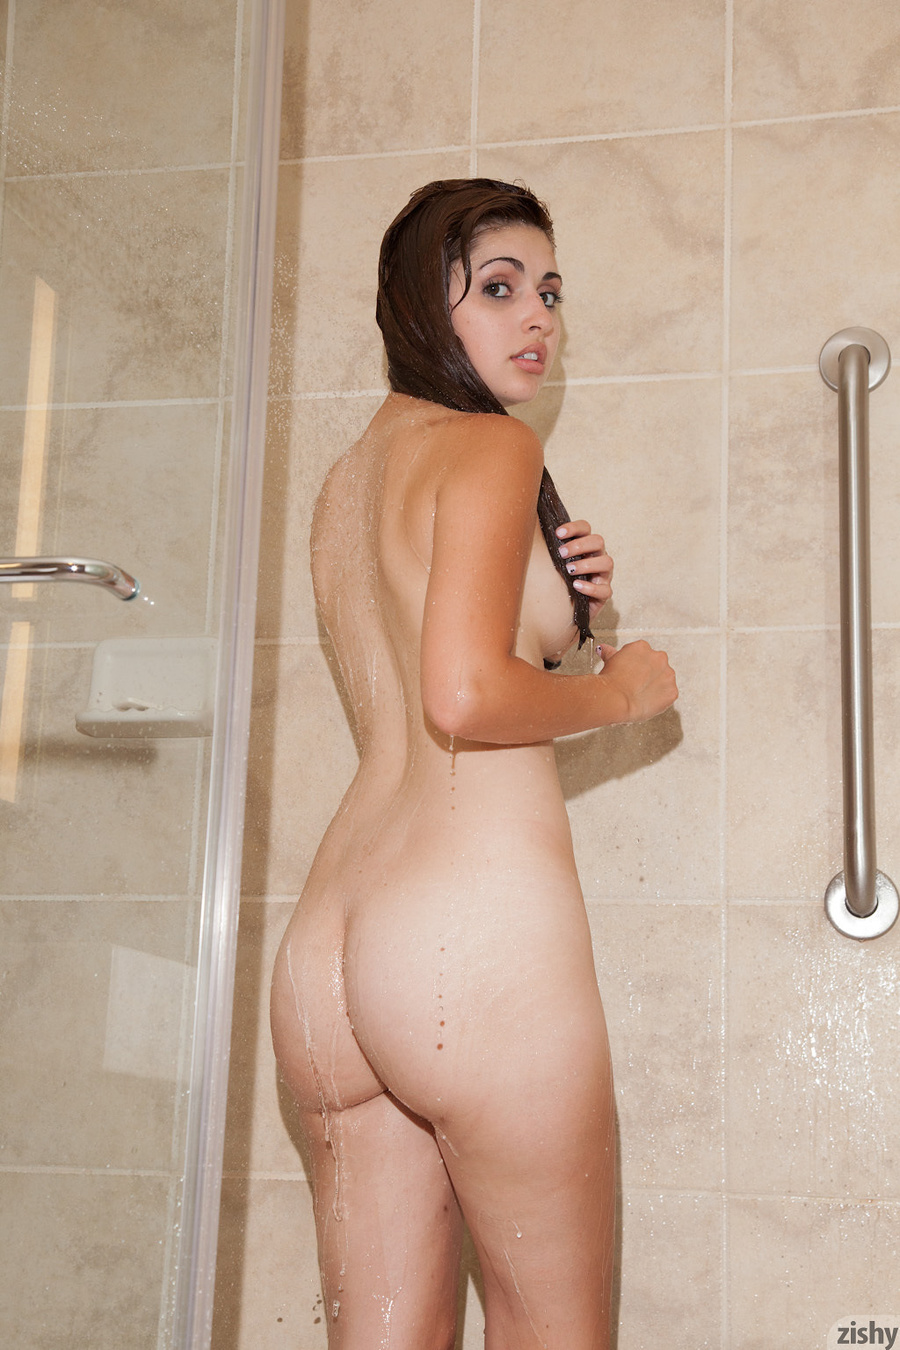 Firmly girls caught taking showers naked